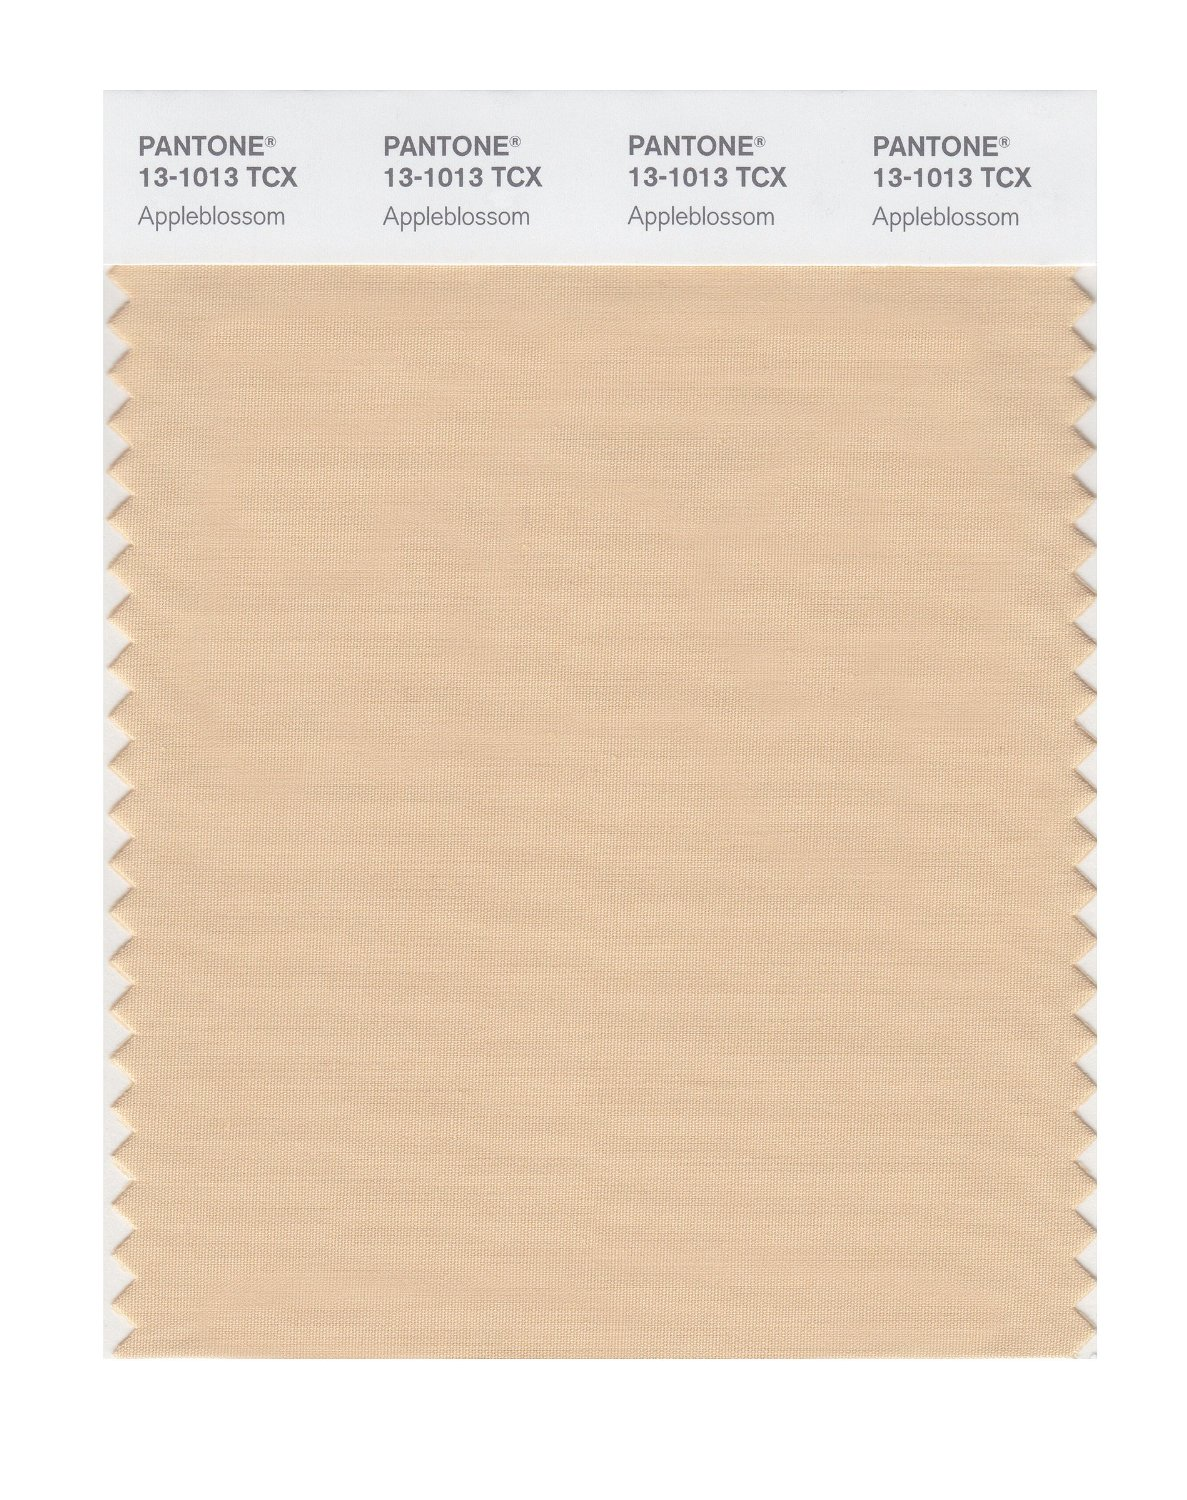 Pantone Smart Swatch 13-1013 Appleblossom